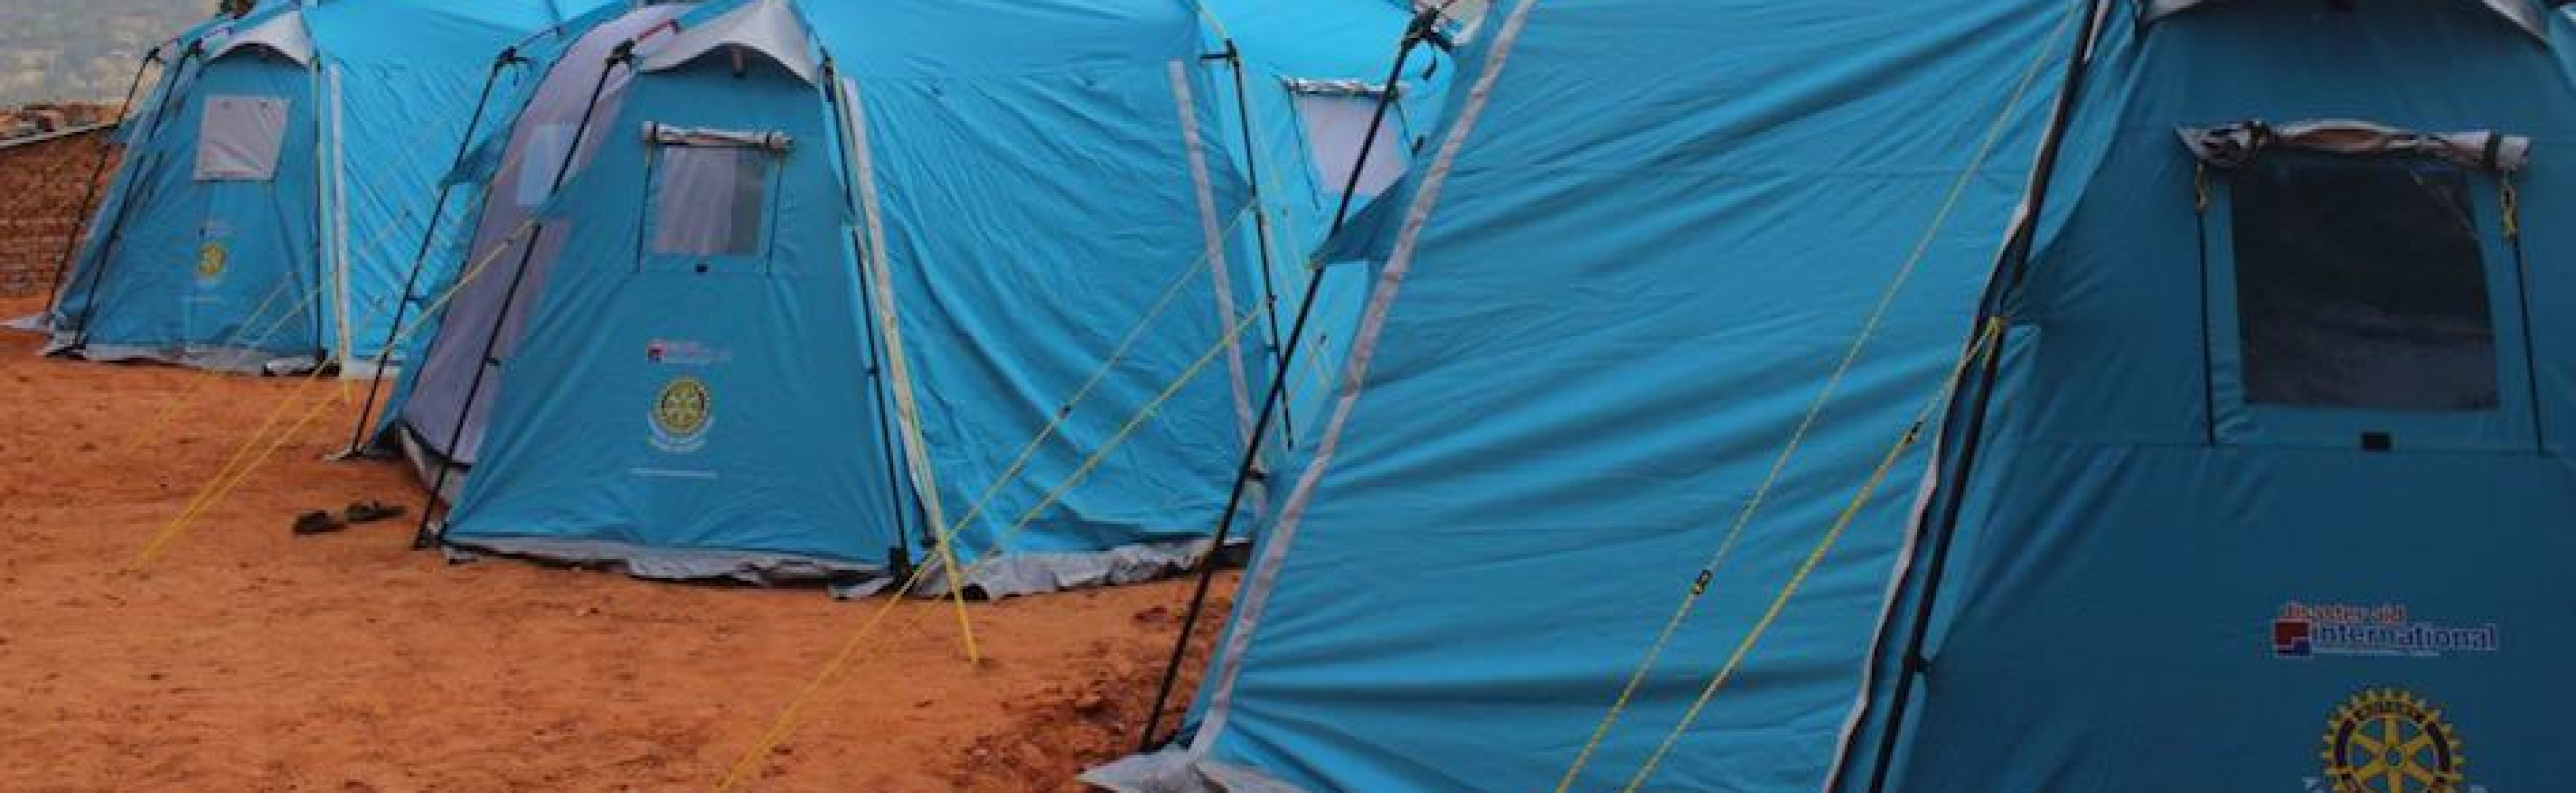 Nepal_shelterbox_banner